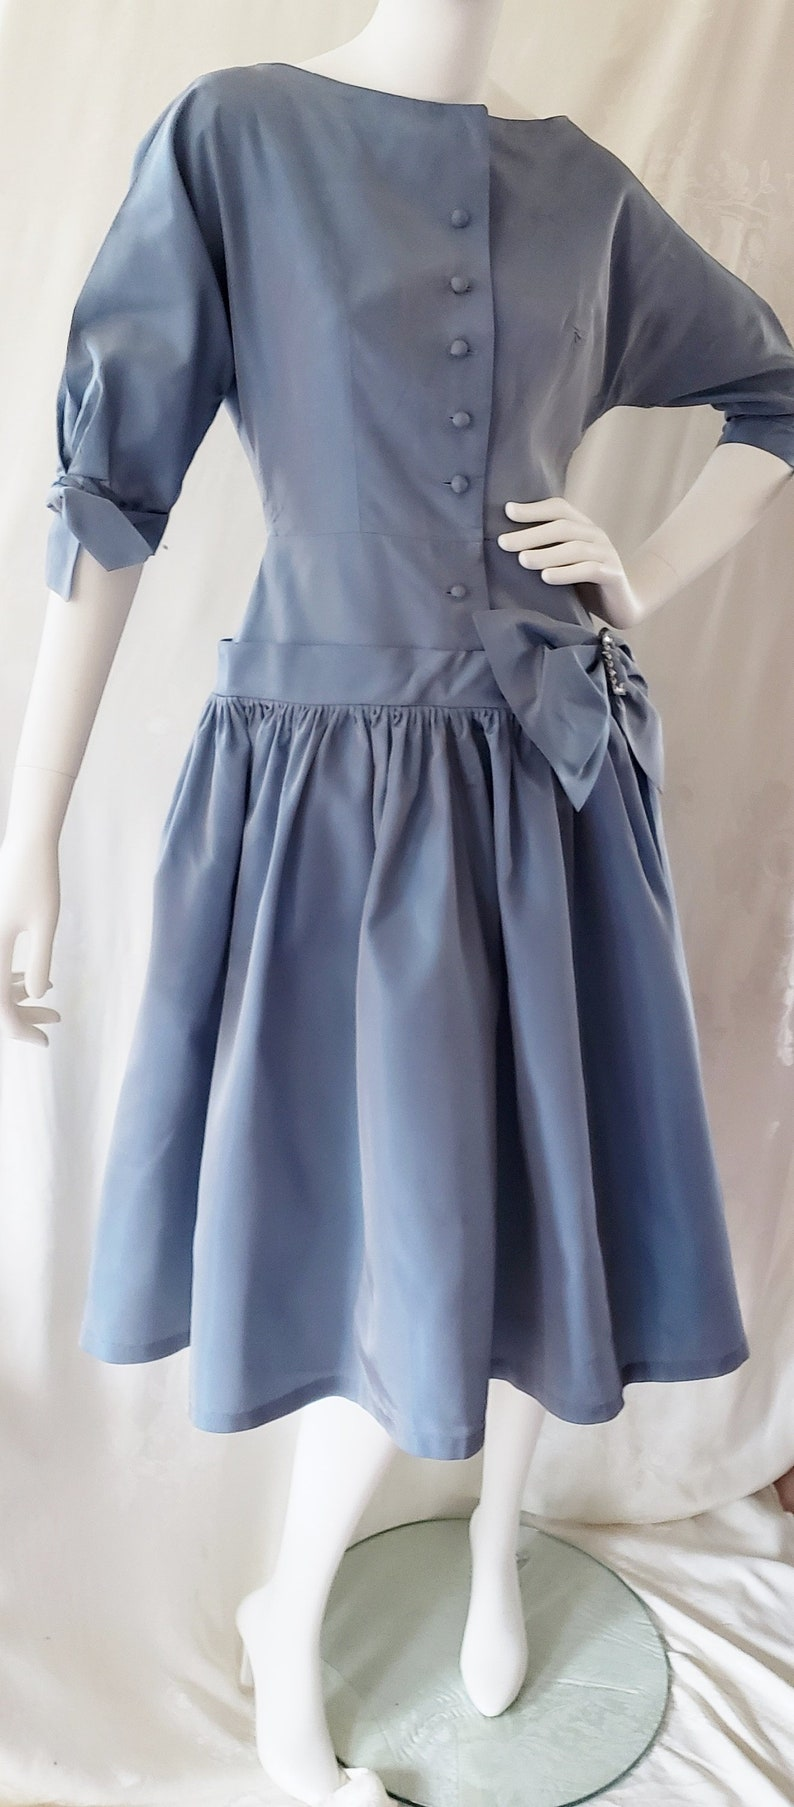 1950s Dresses, 50s Dresses | 1950s Style Dresses Oh So CHIC Blue 1950s Party Dress SophisticatedLaRue $78.00 AT vintagedancer.com